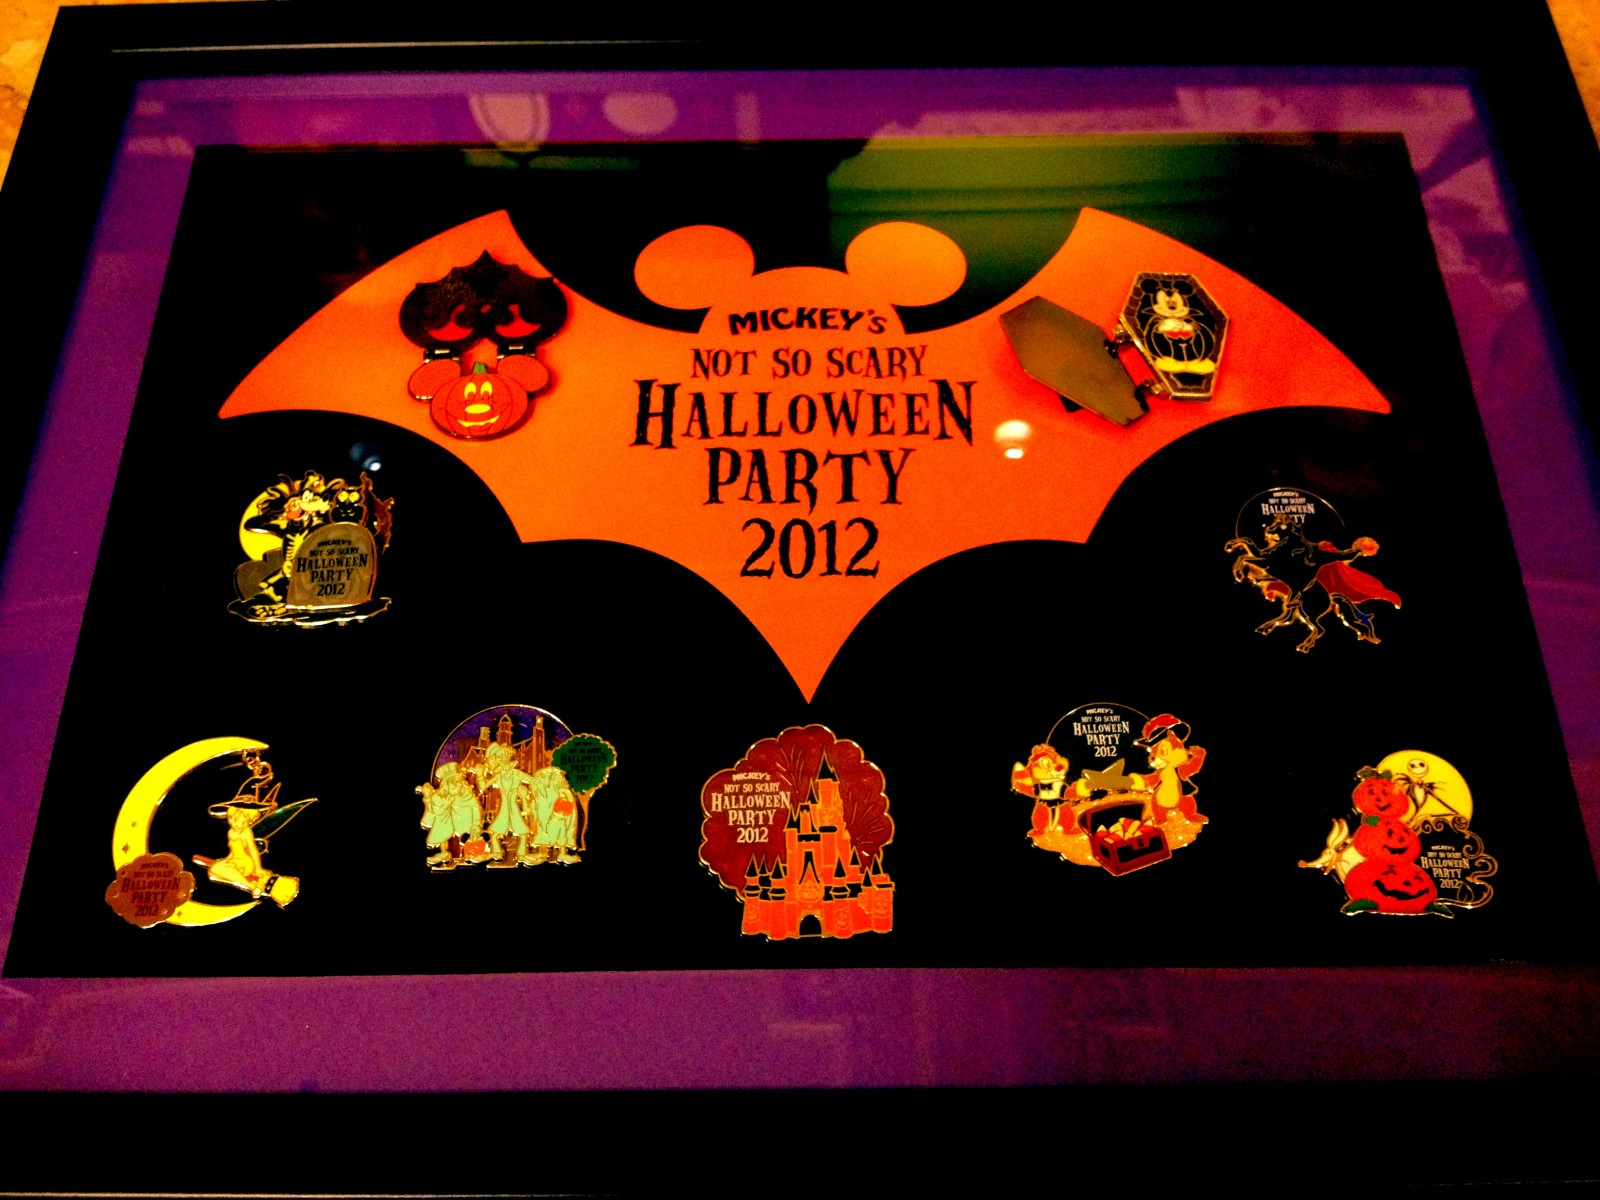 Mickey's Not So Scary Halloween Party Merchandise - Framed Pin Set - $200.00 - - Weekly Review